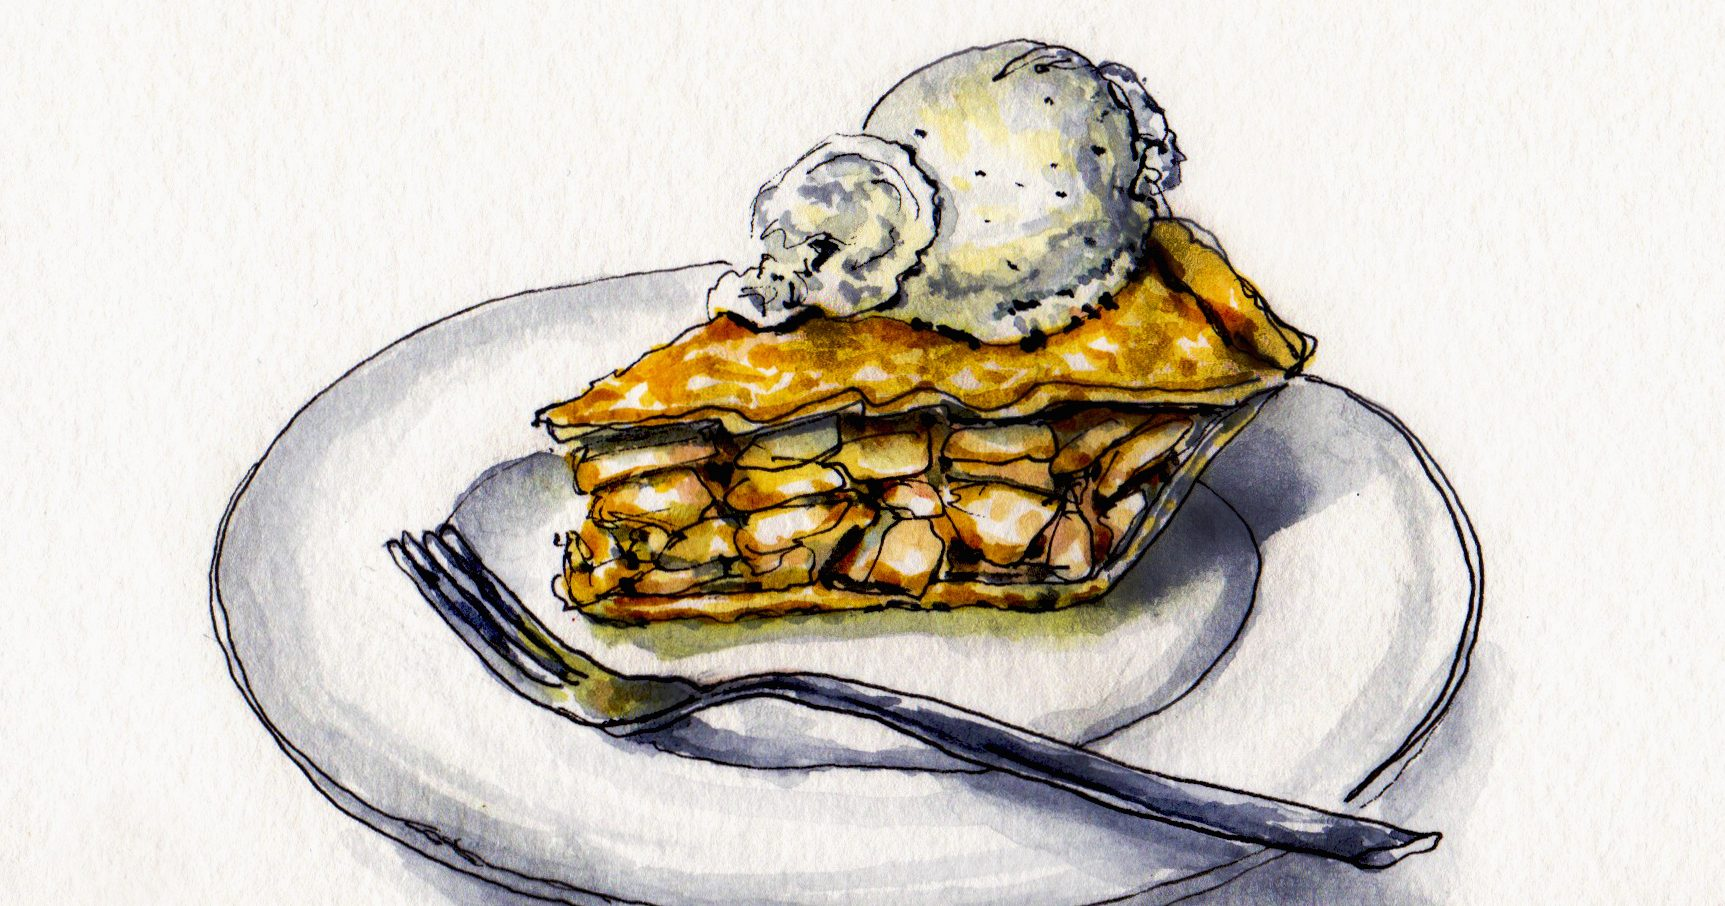 Apple pie drawing by Charlie O'Shields.